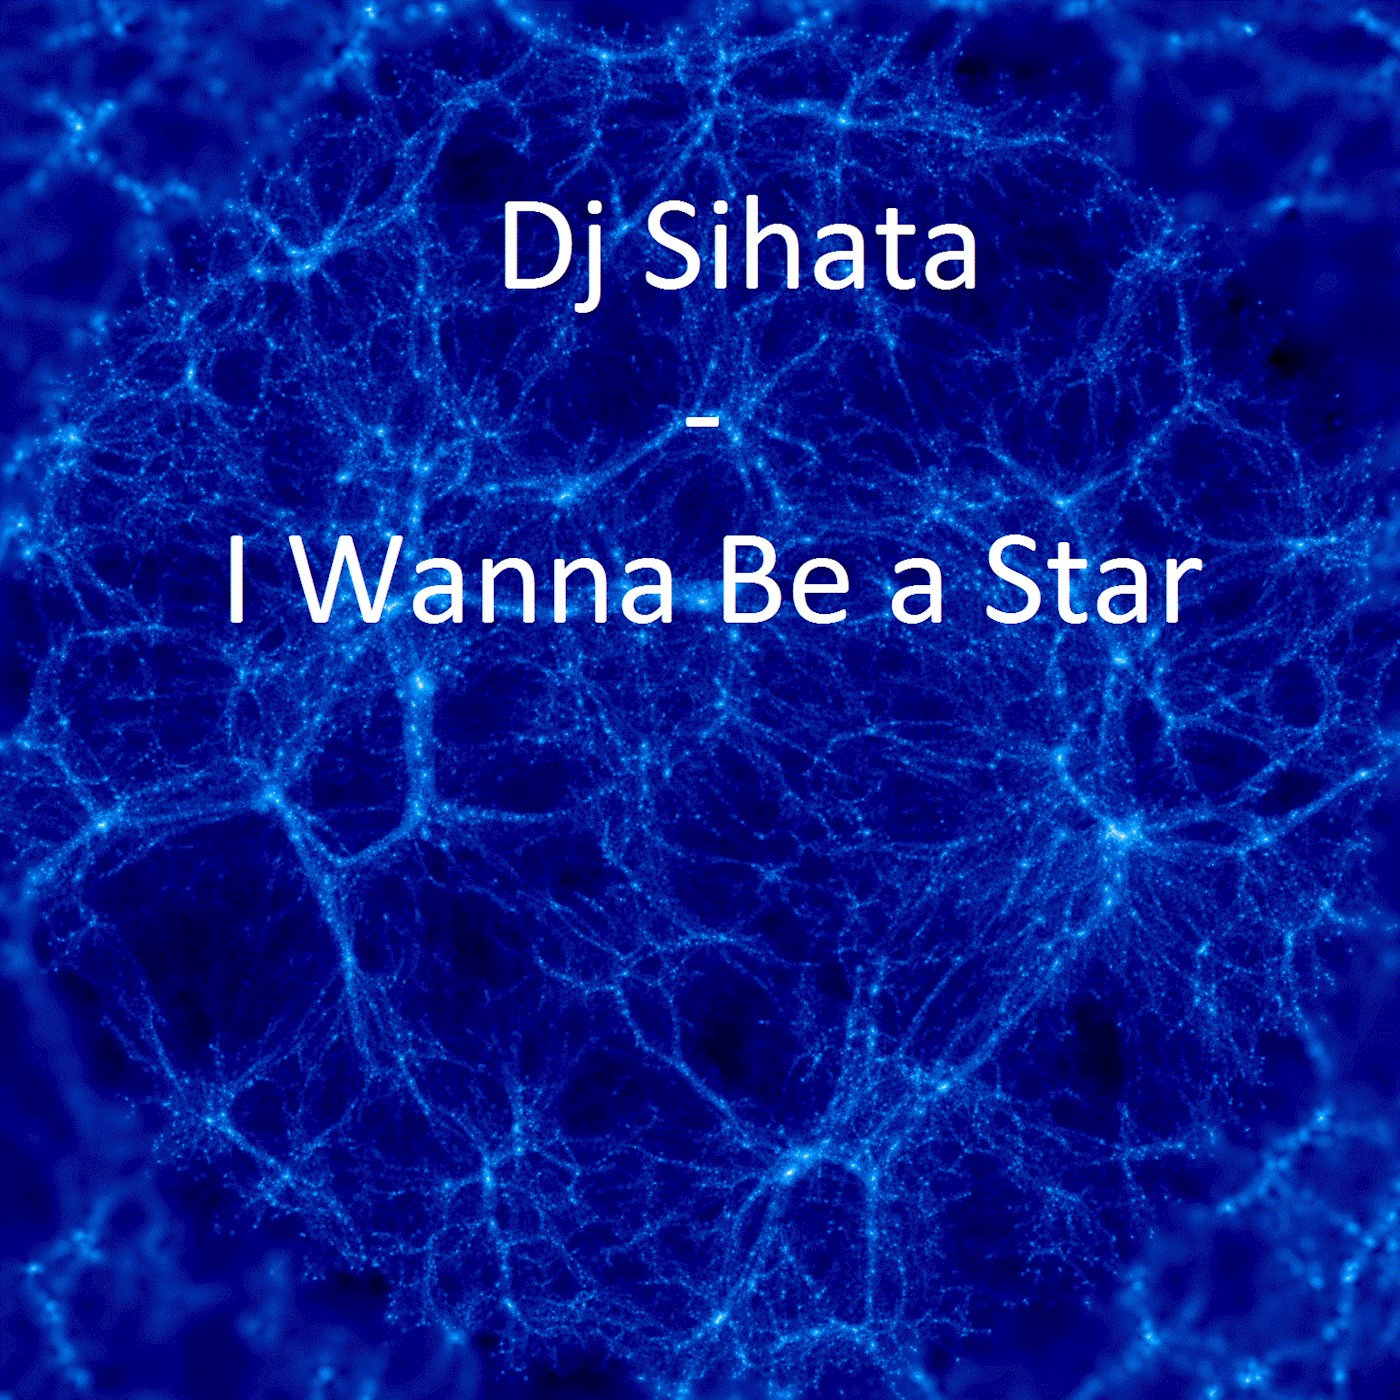 I Wanna Be a Star